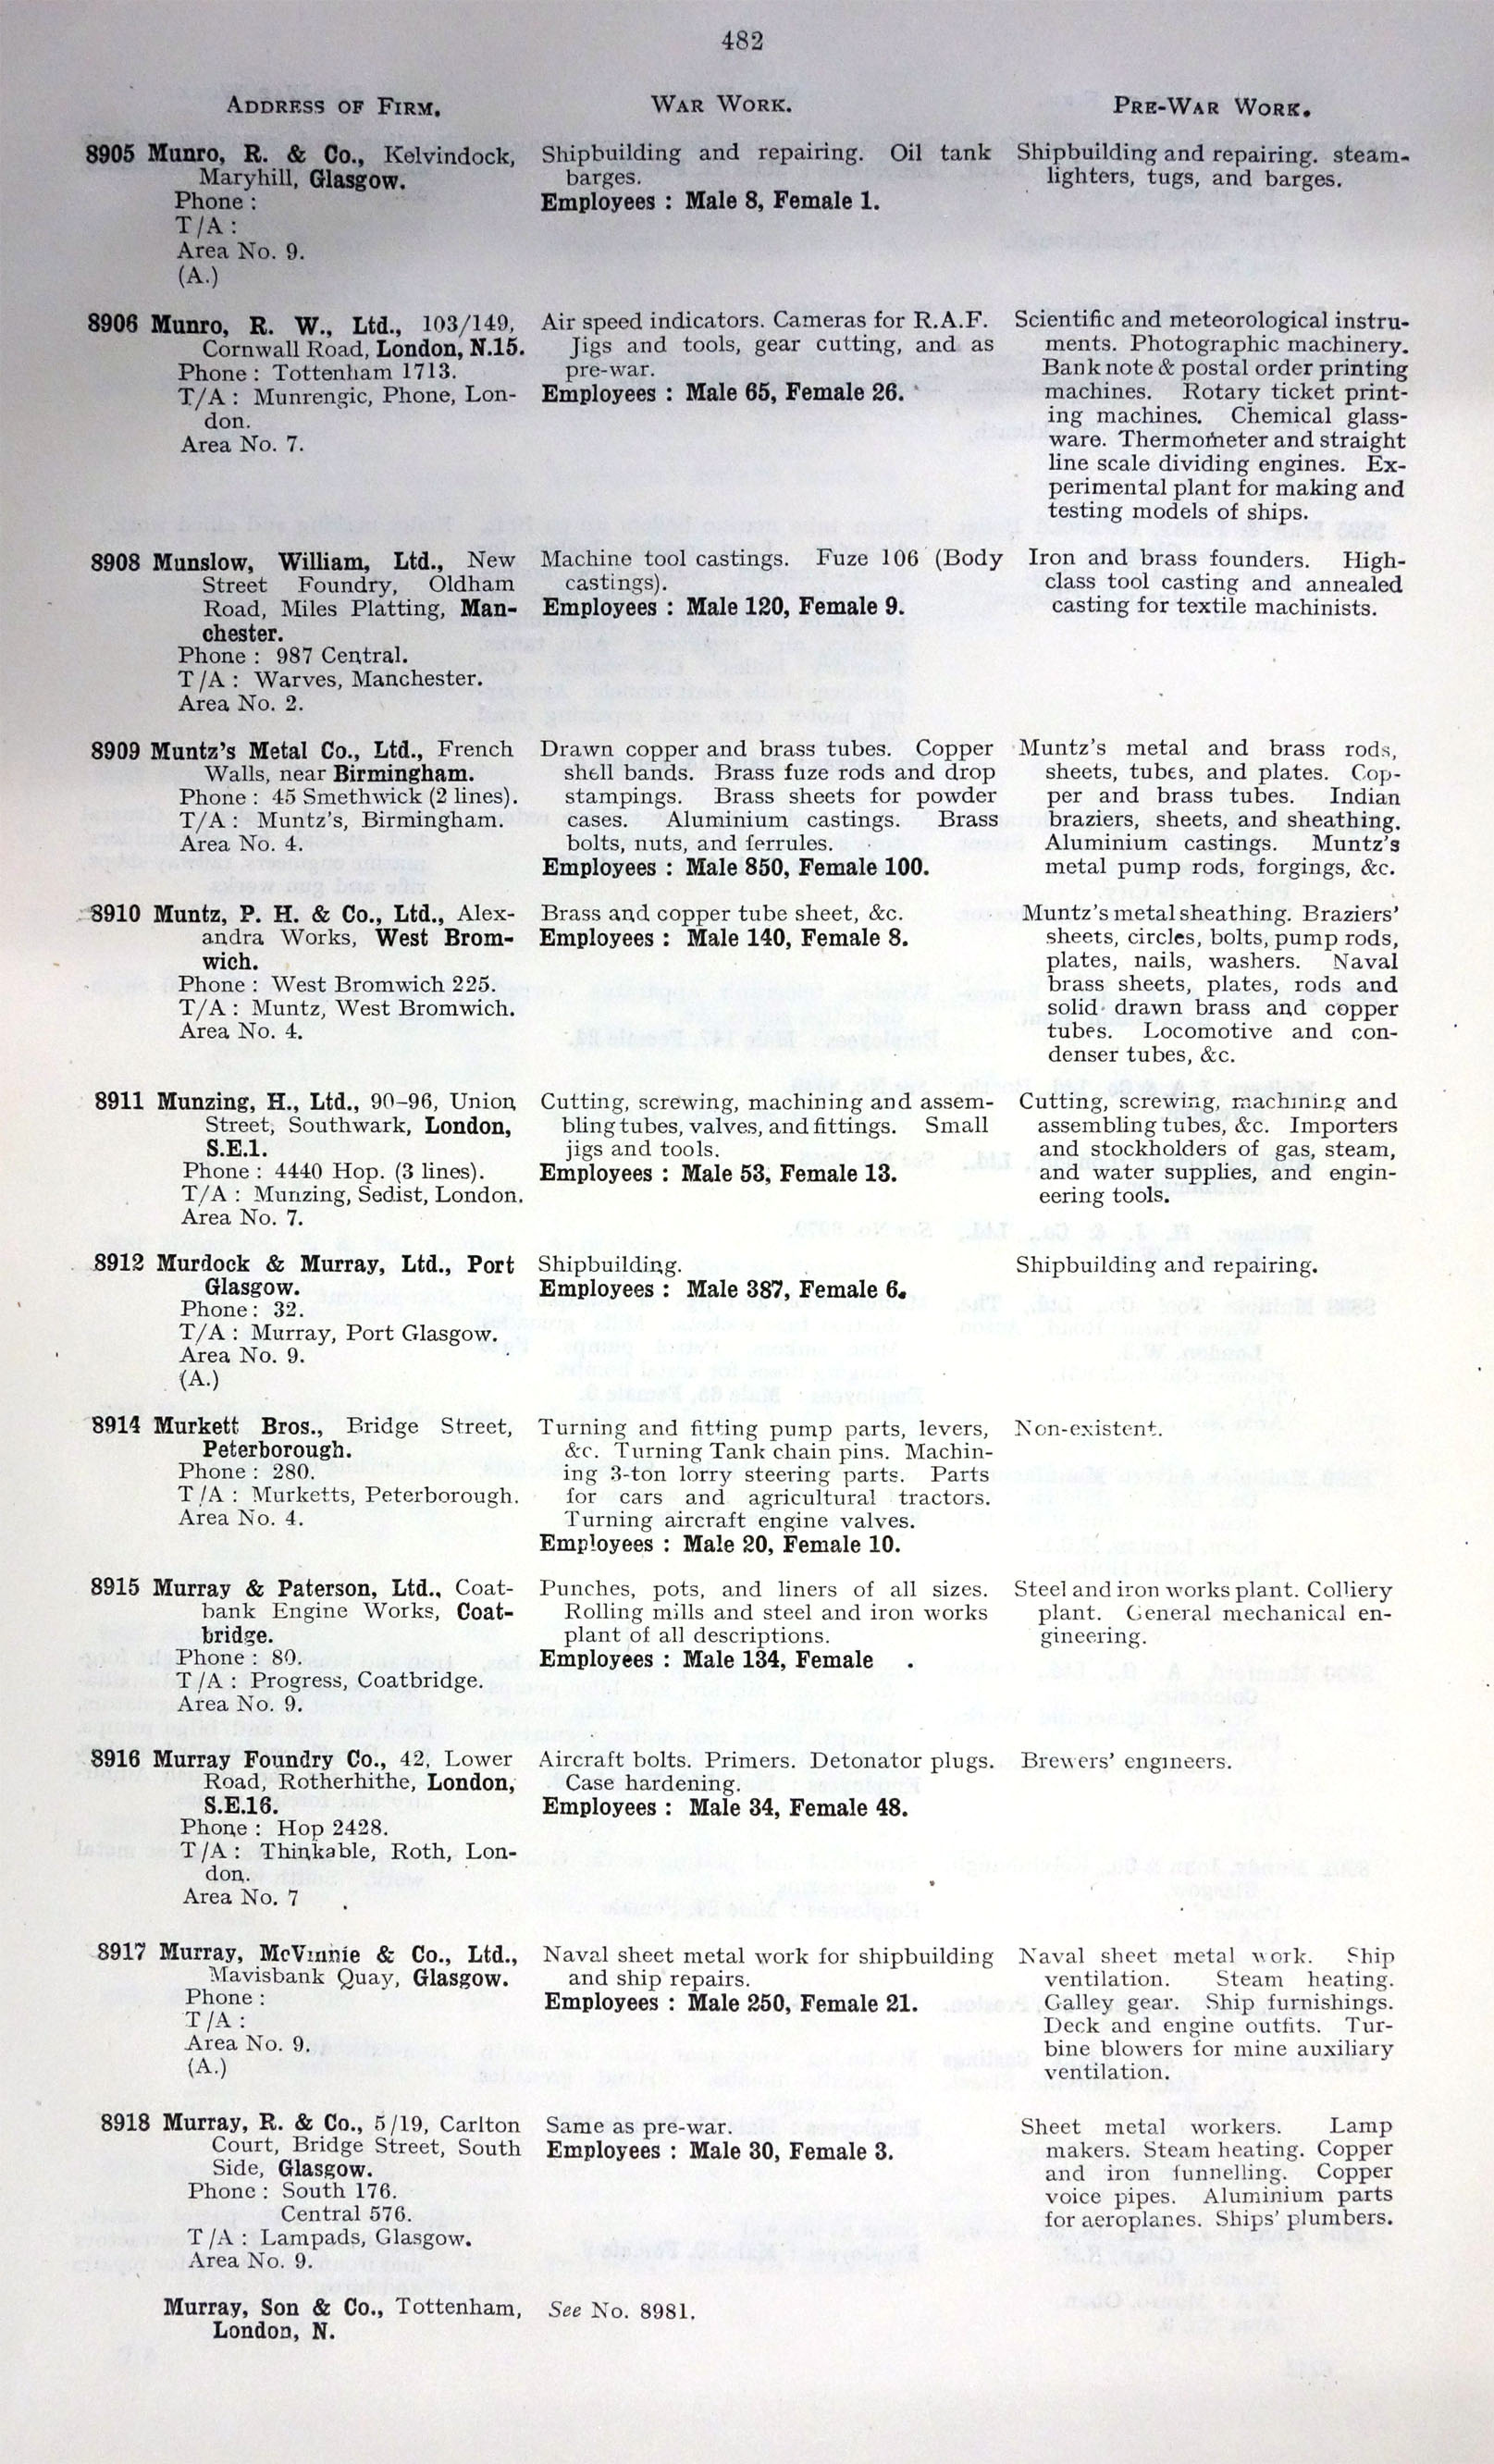 1918 Directory of Manufacturers in Engineering and Allied